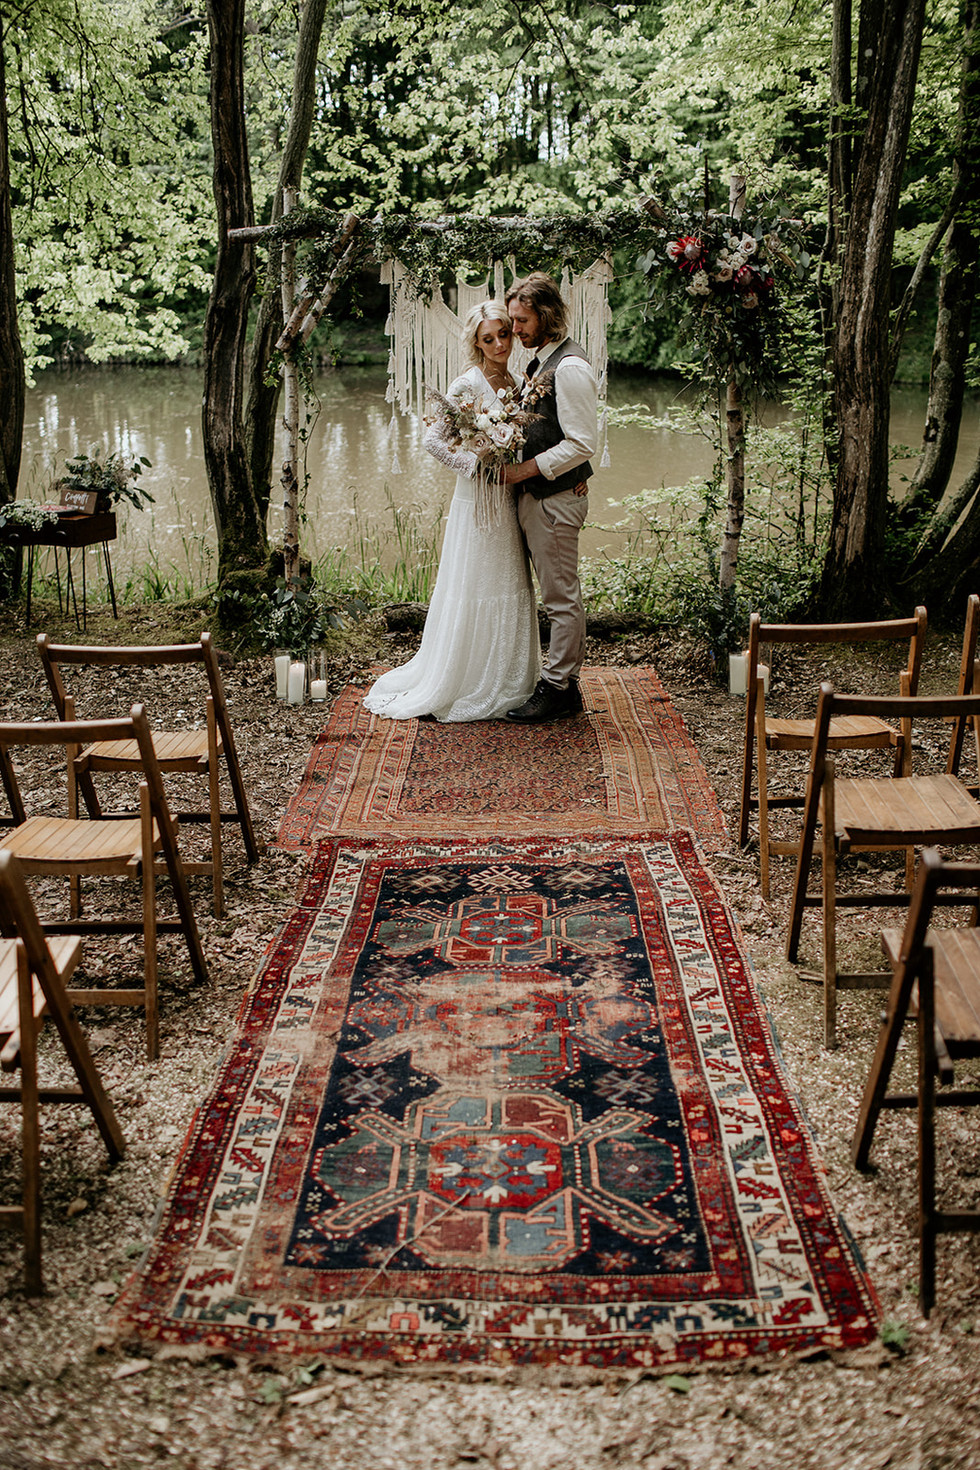 An 11 mtr authentic Persian rug aisle and rustic folding chairs for 60 guests are included within our packages.